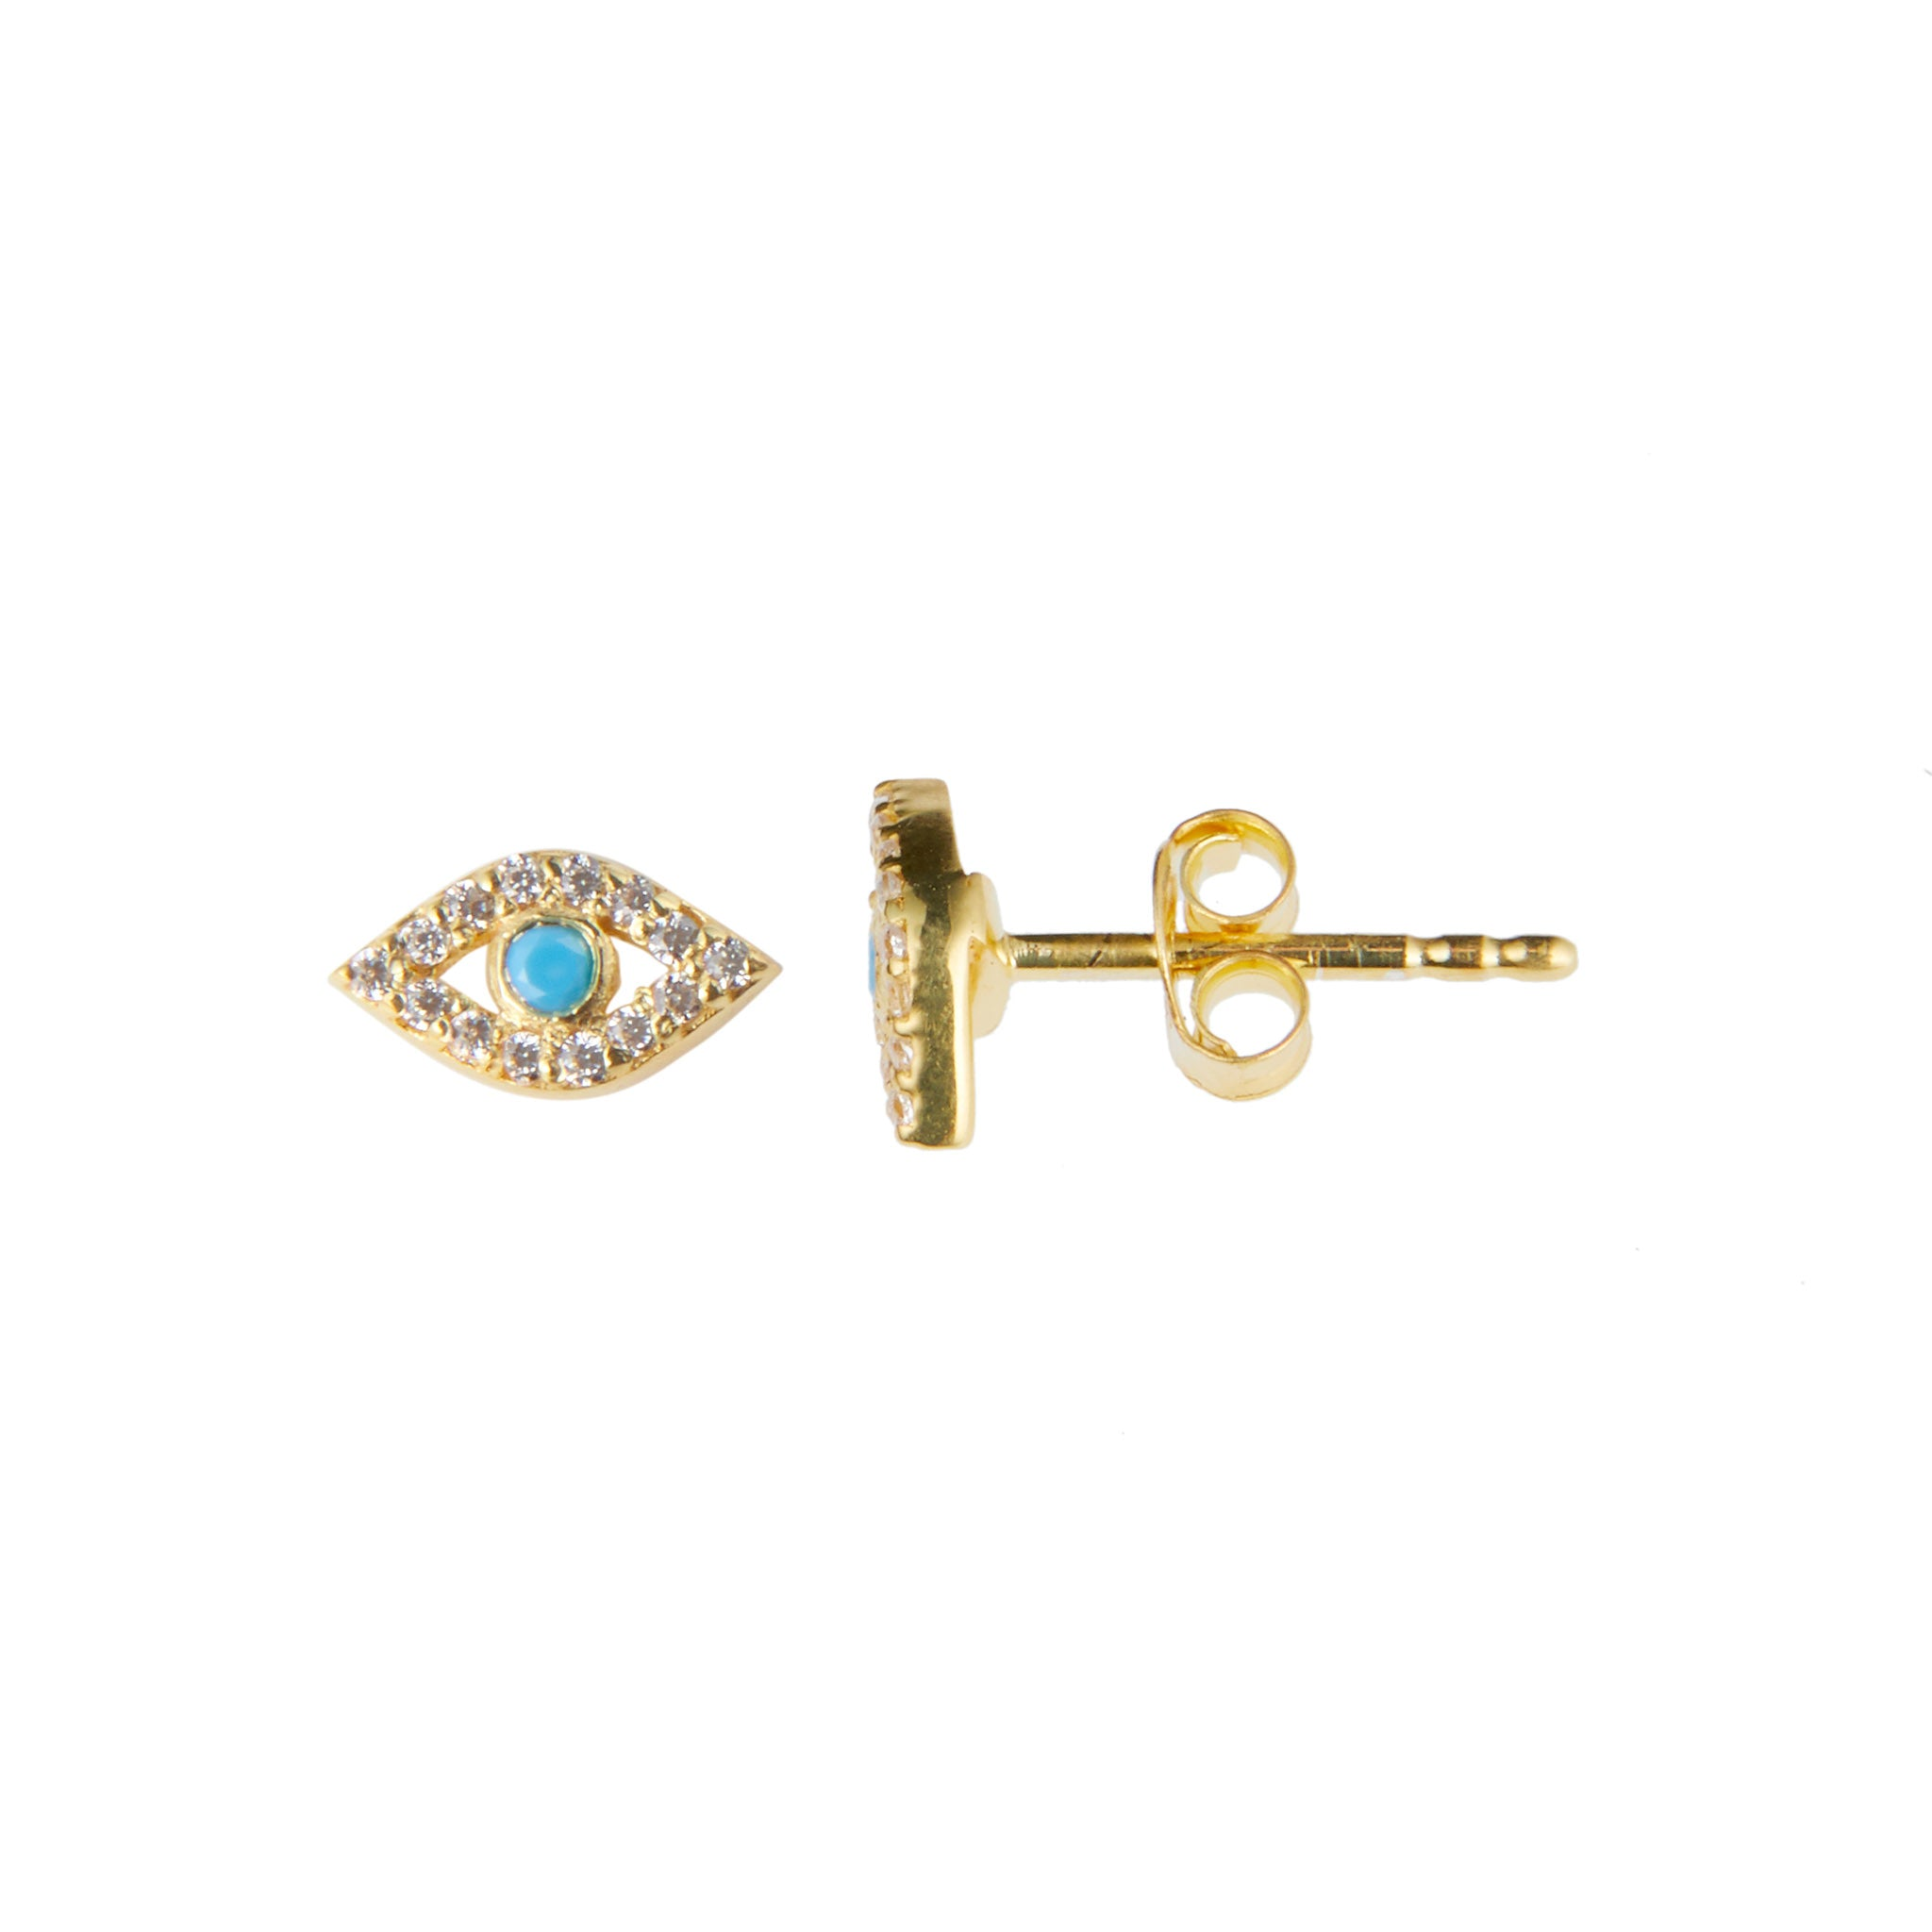 Cleo Earring in Gold with Turquoise